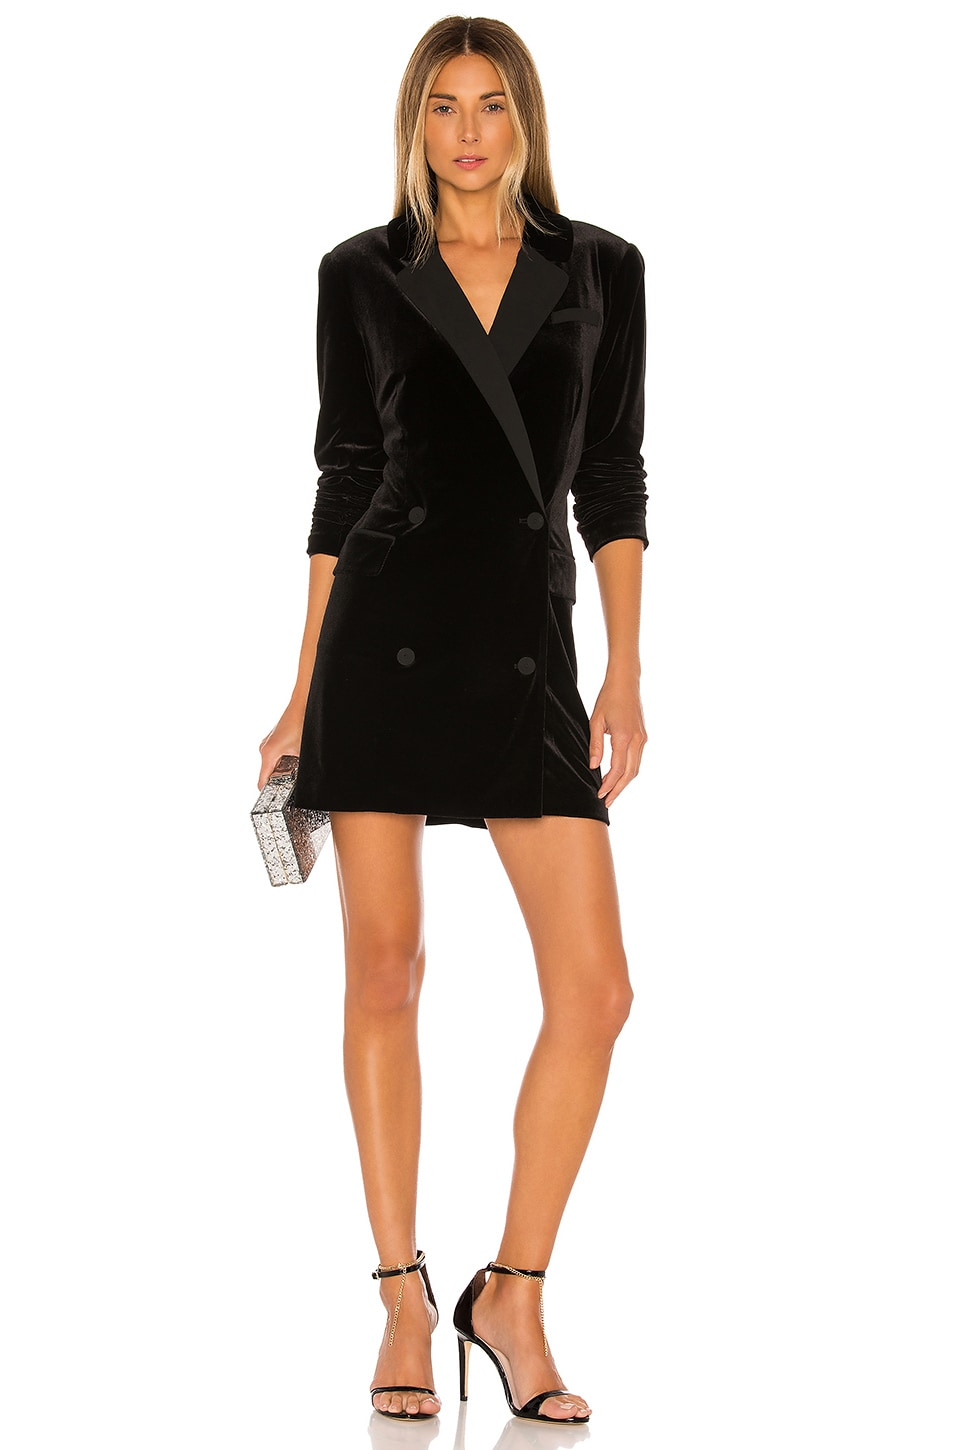 Ruched Velvet Blazer Dress             1. STATE                                                                                                                                         Sale price:                                                                       CA$ 141.86                                                                  Previous price:                                                                       CA$ 201.31 16